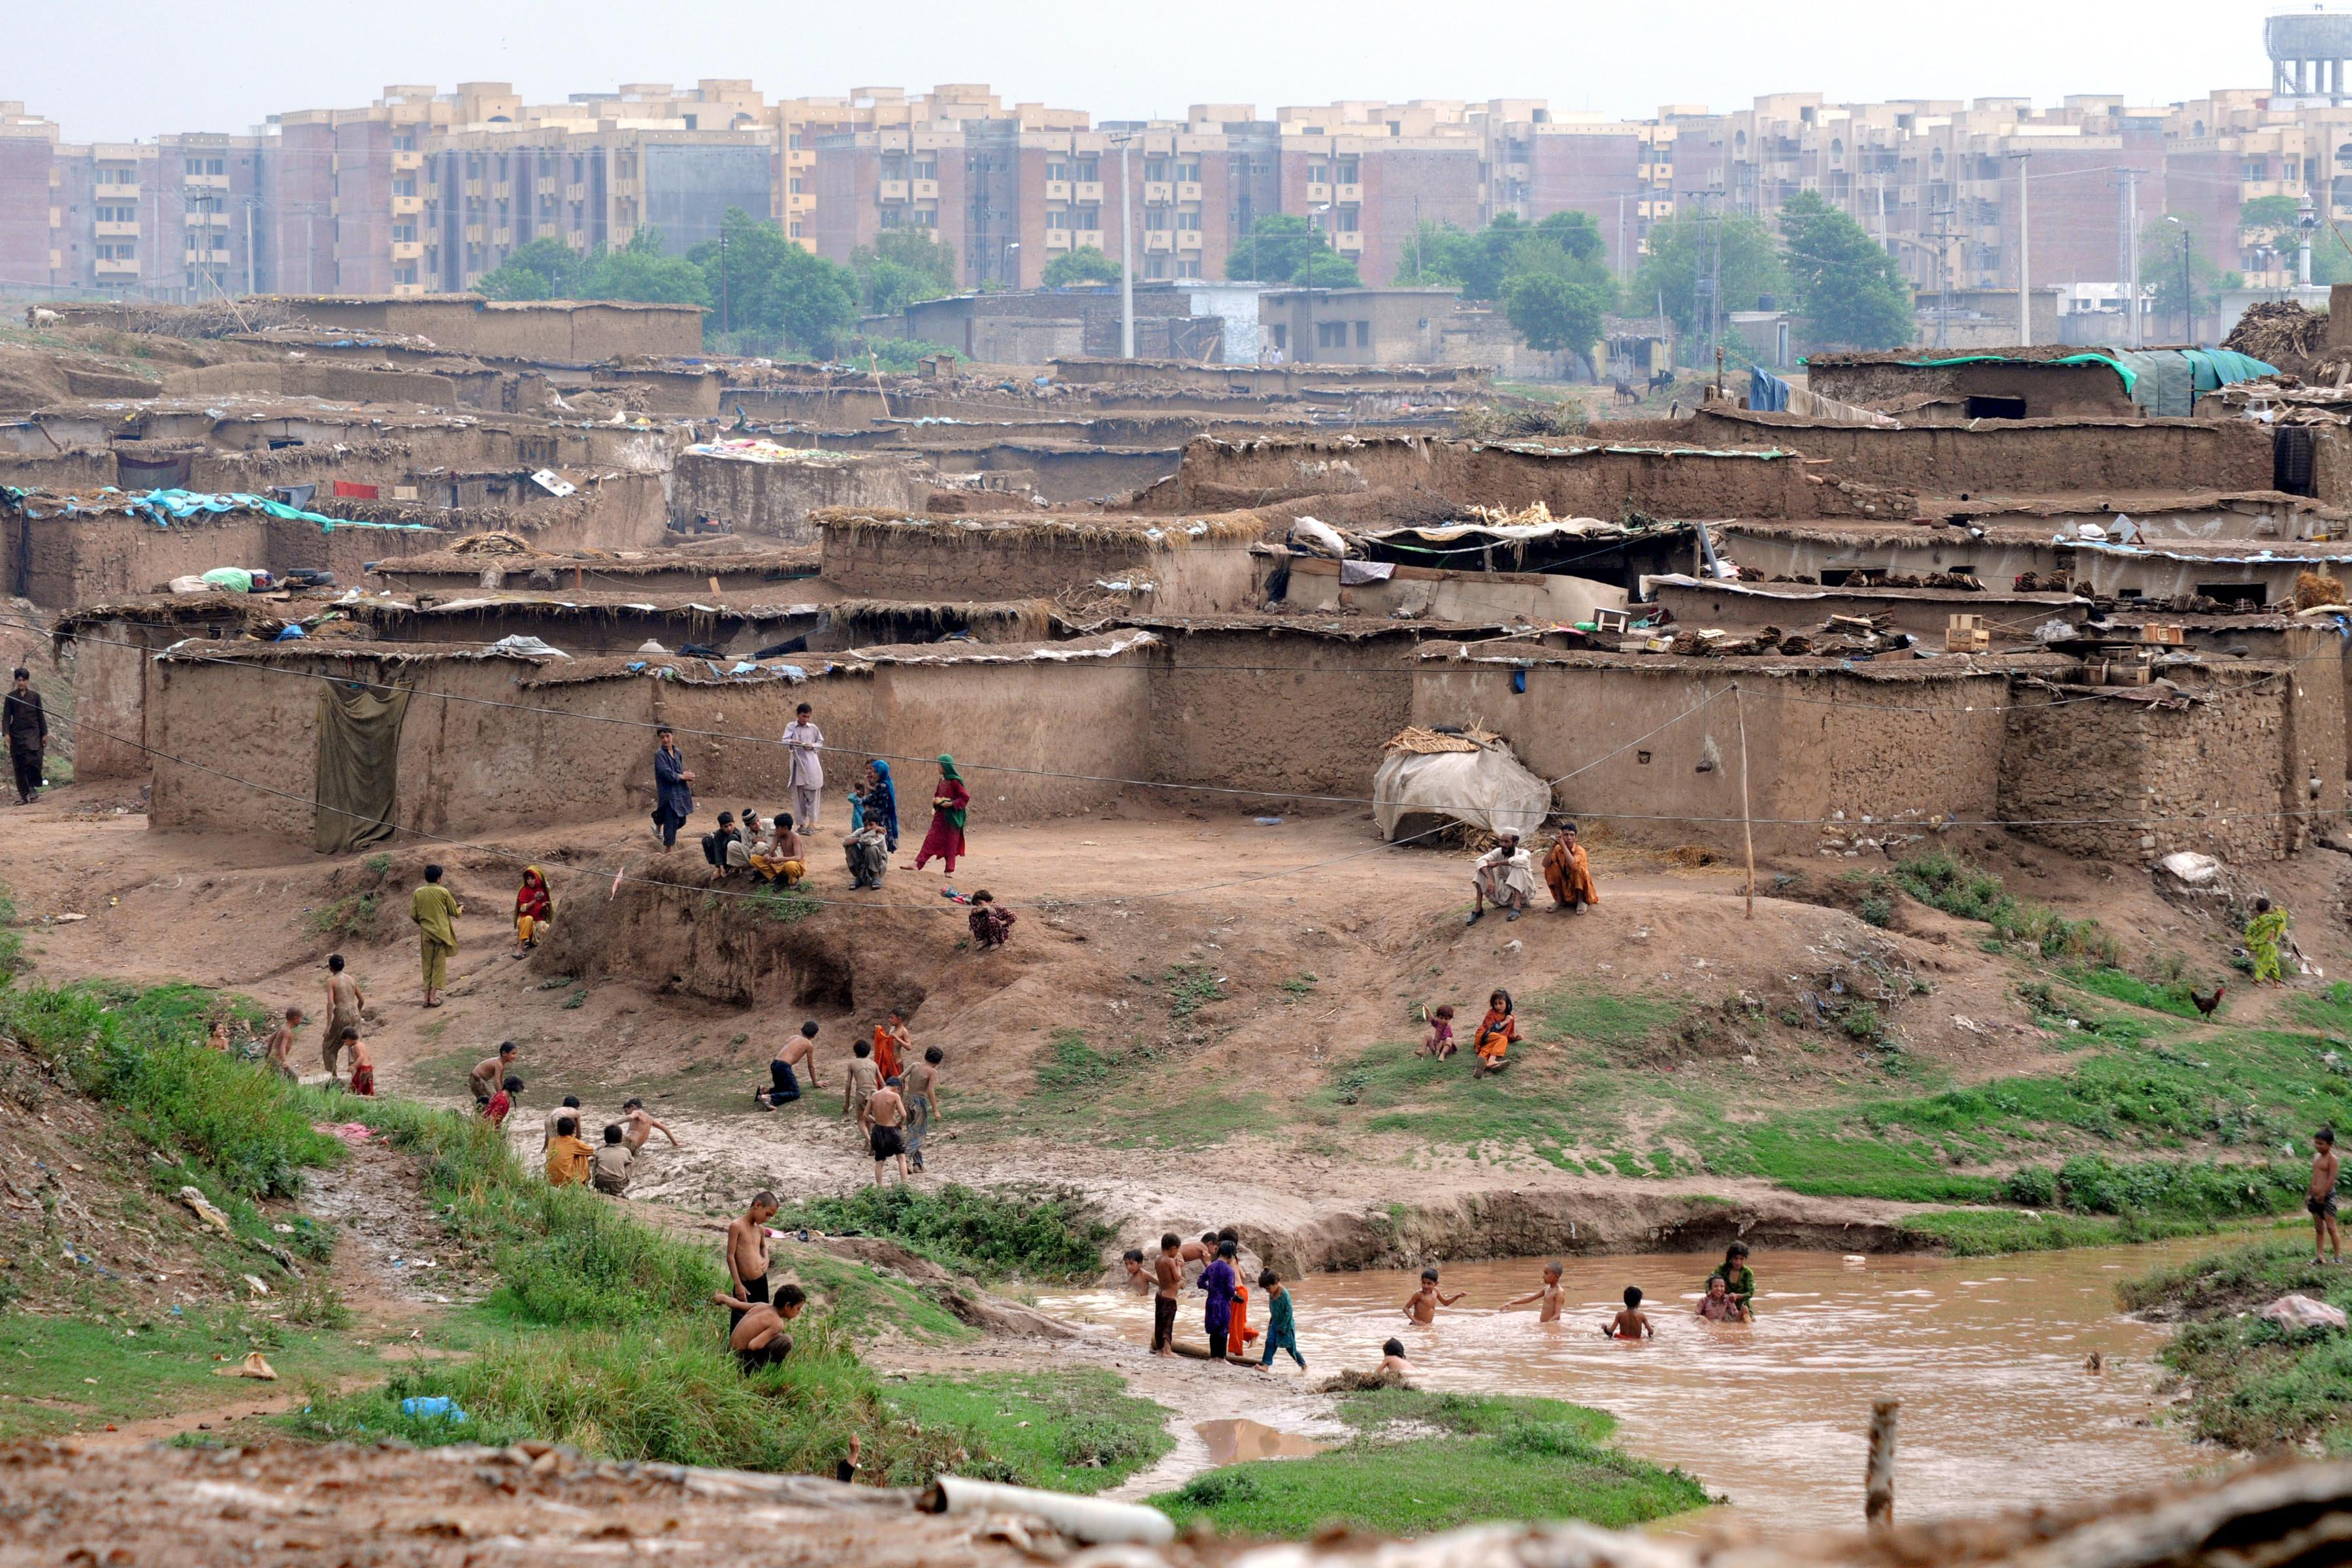 igp orders search operations in slums